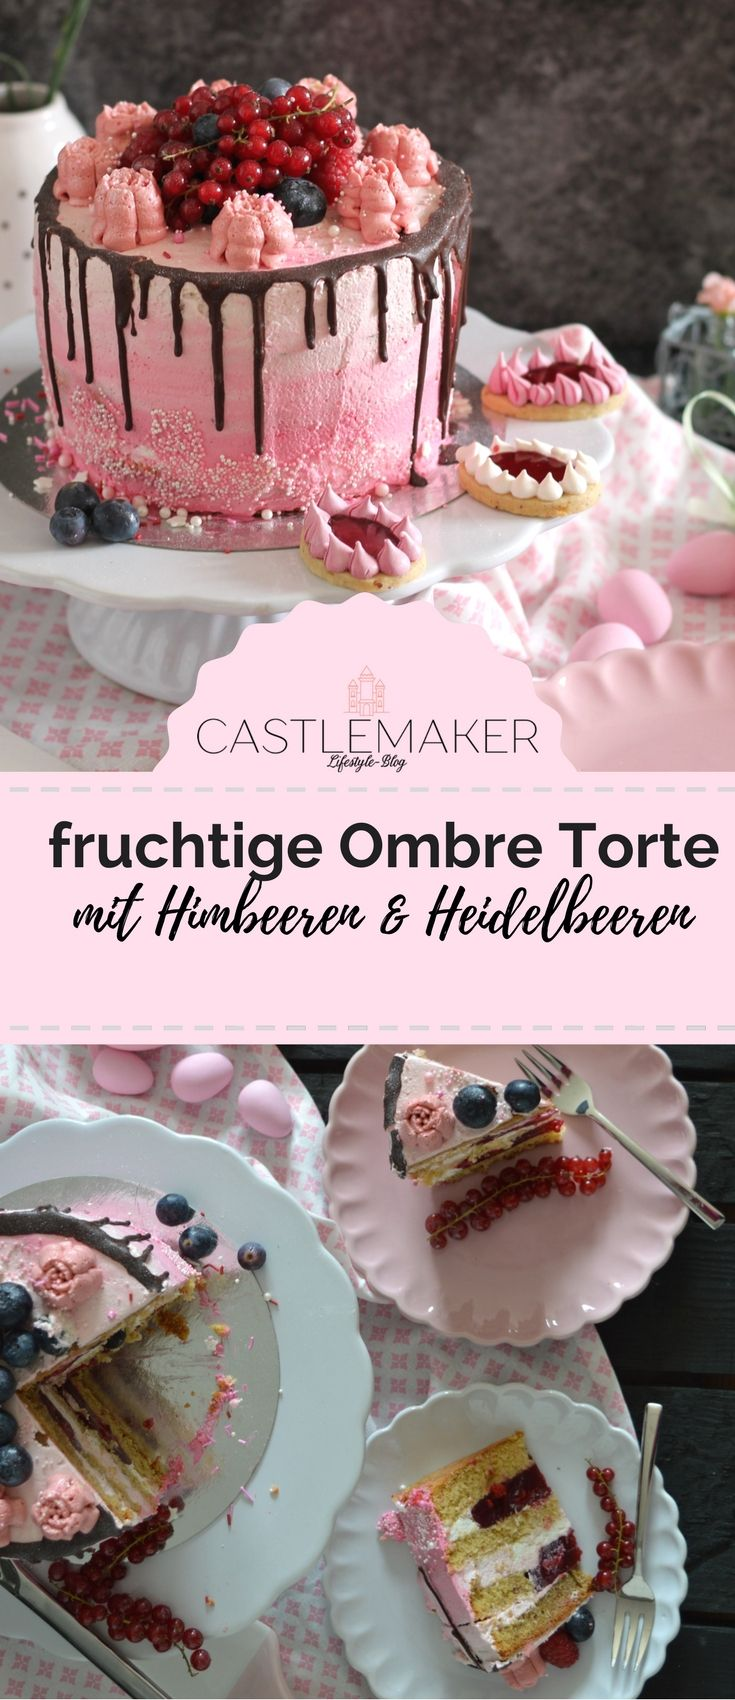 Fruchtige Torte im Ombre-Look mit Himbeeren & Heidelbeeren // Drip Cake – Castlemaker Lifestyle-Blog / Food / Travel / Fashion / Beauty / Backen